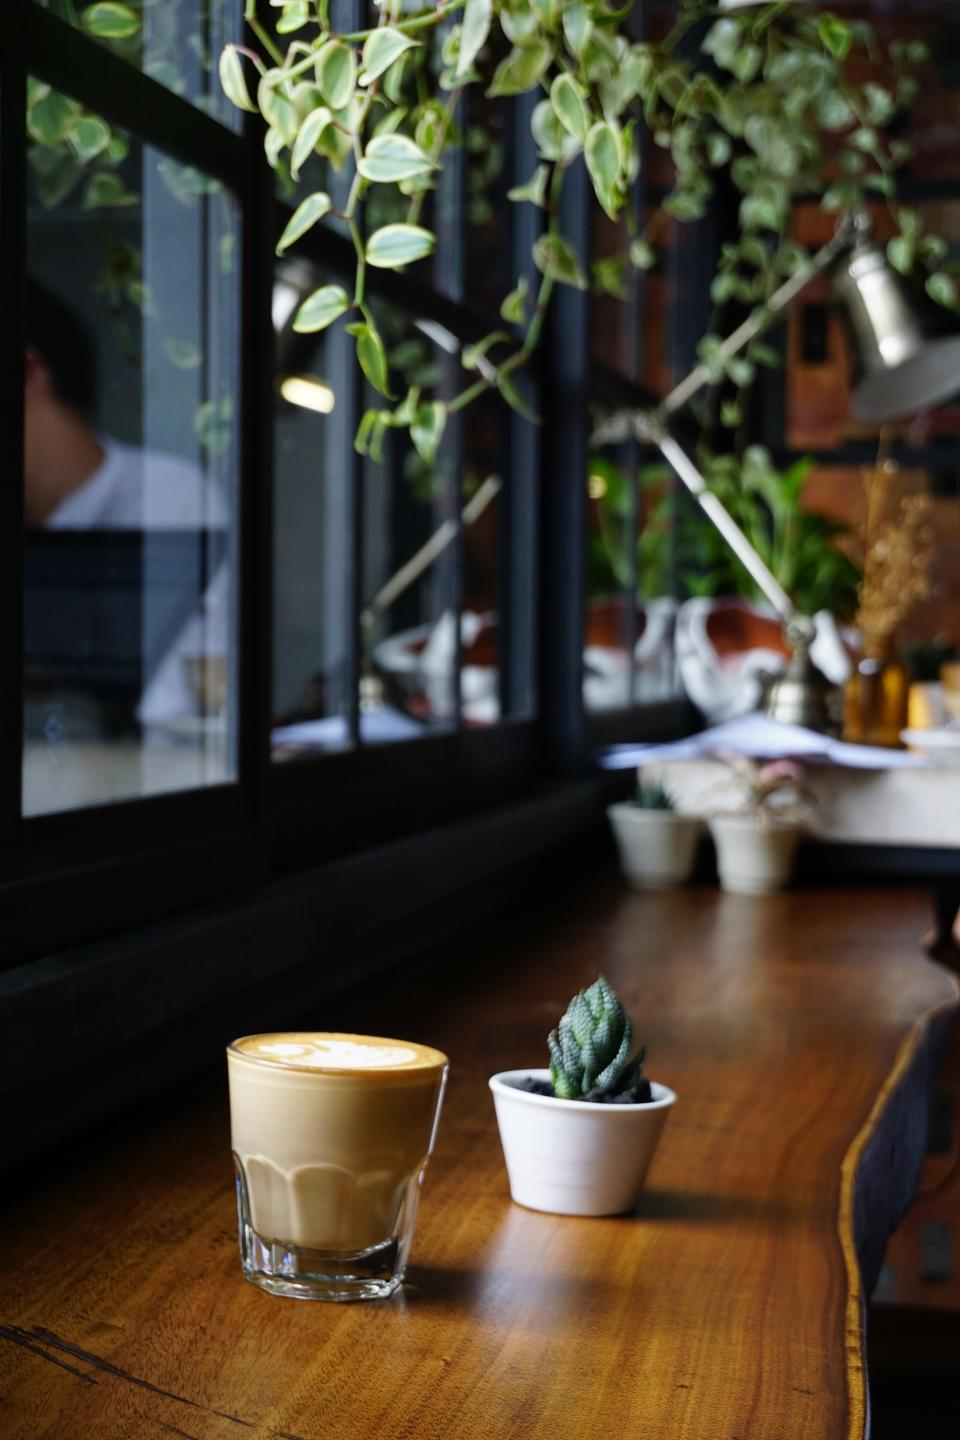 plants nature bonsai glass wooden table coffee latte windows shop restaurant bokeh blur reflection costumer cactus